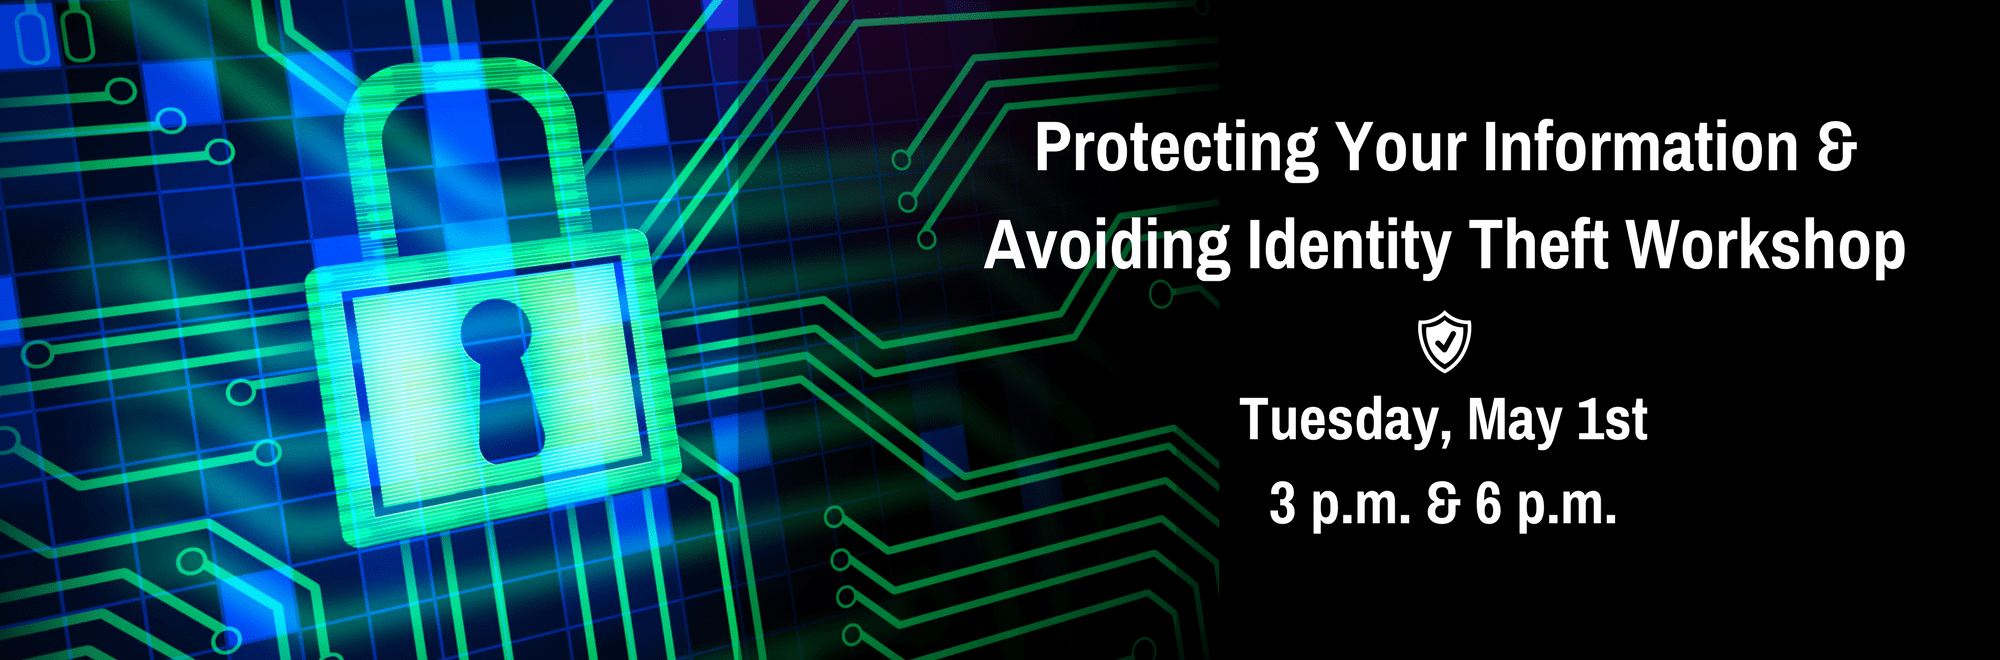 Protecting Your Information & Avoiding Identity Theft Workshop